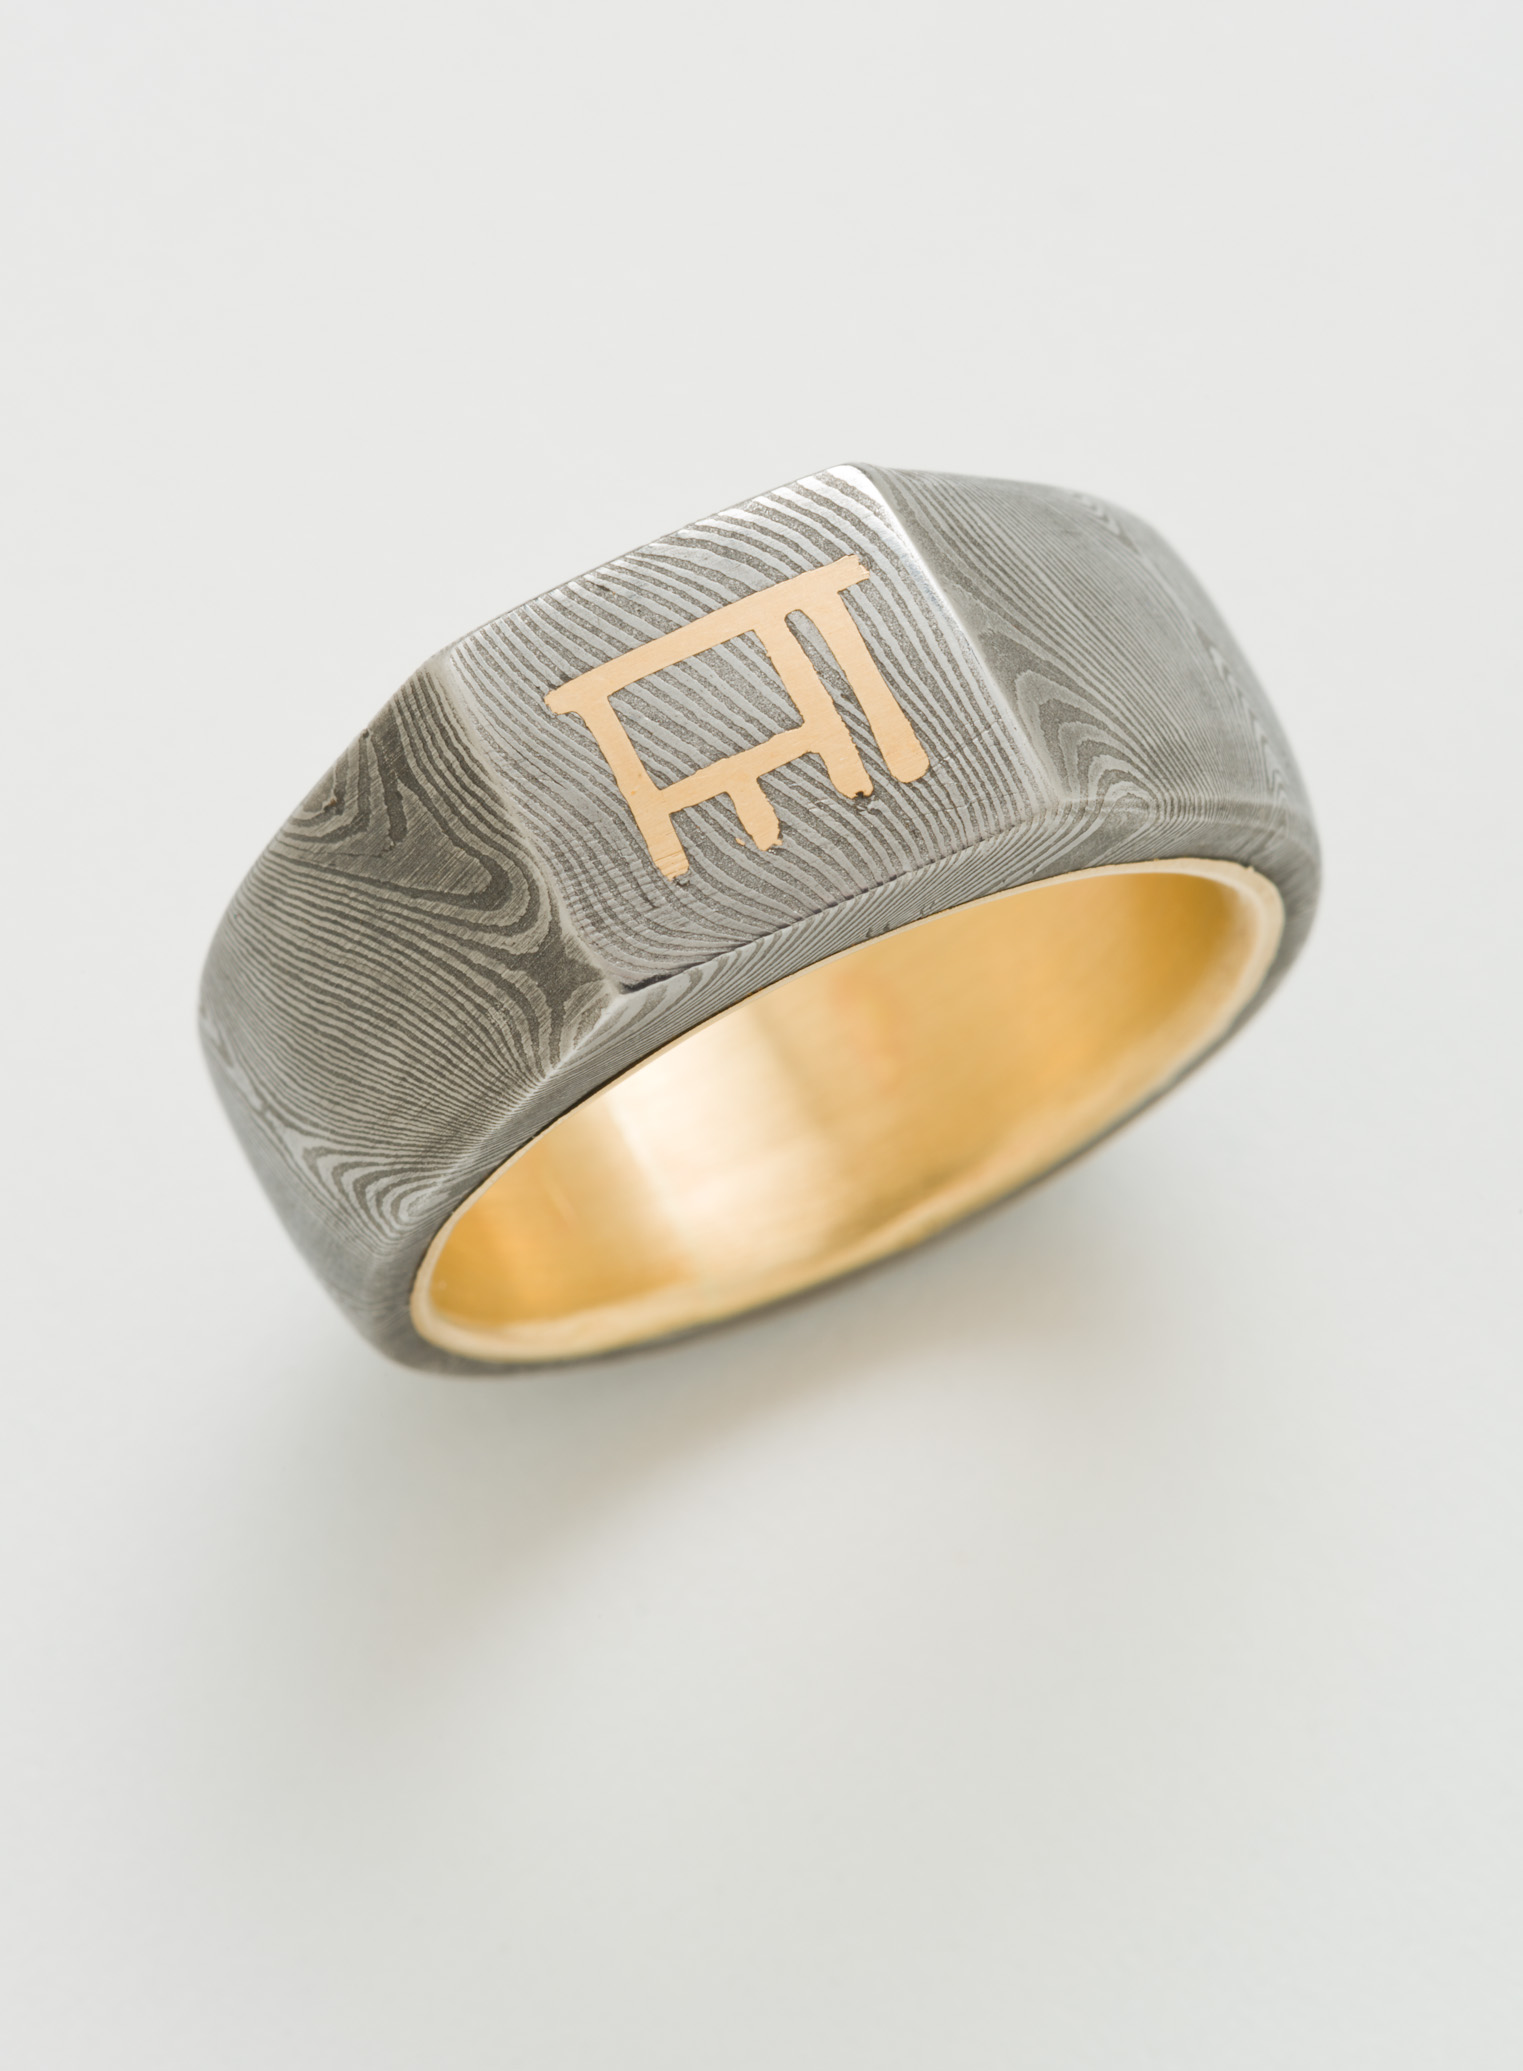 Penland signet ring